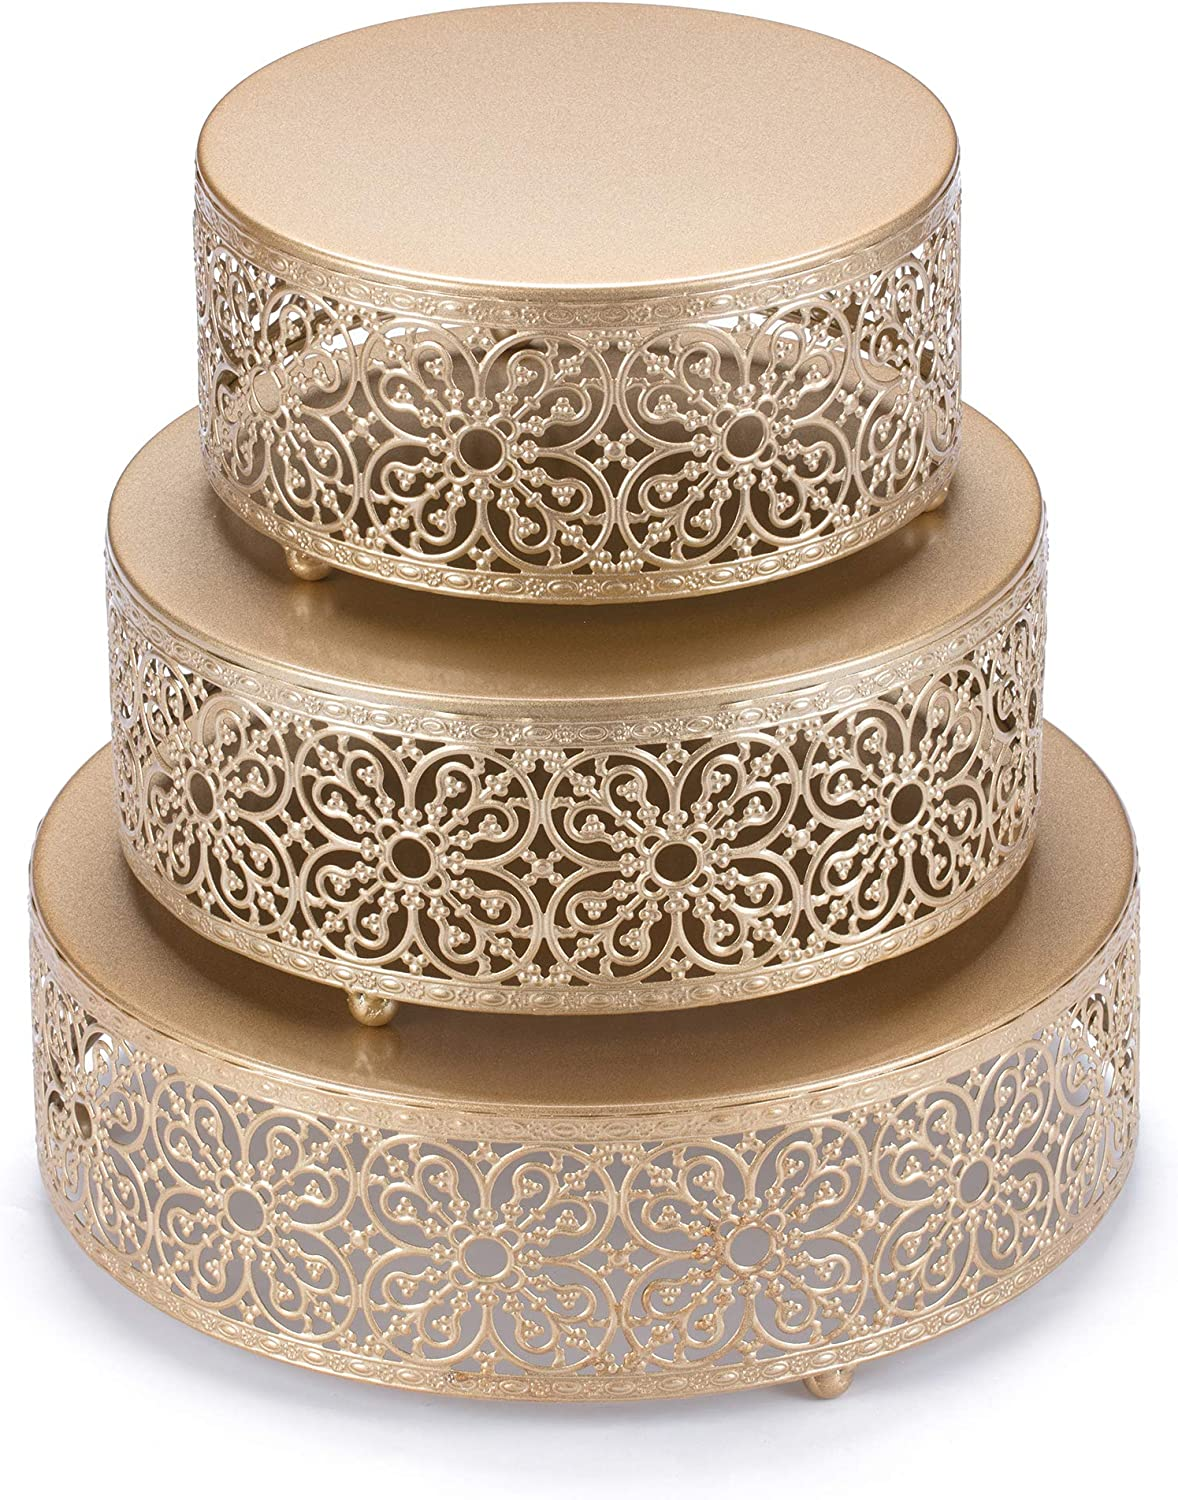 Hotity Ranking TOP13 3 Sets Cake Stands Round Stand Cup Large discharge sale Display Set Metal